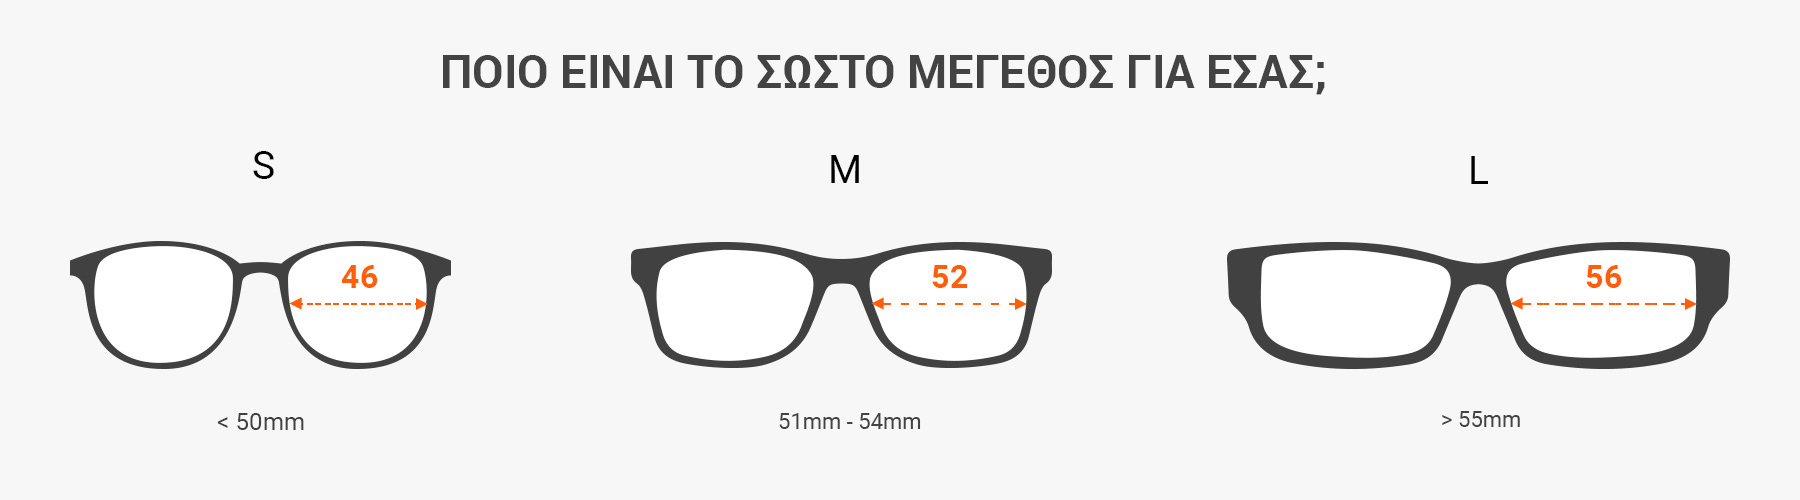 0957405427 how to read sunglasses measurements - Measure sunglasses size with a ruler